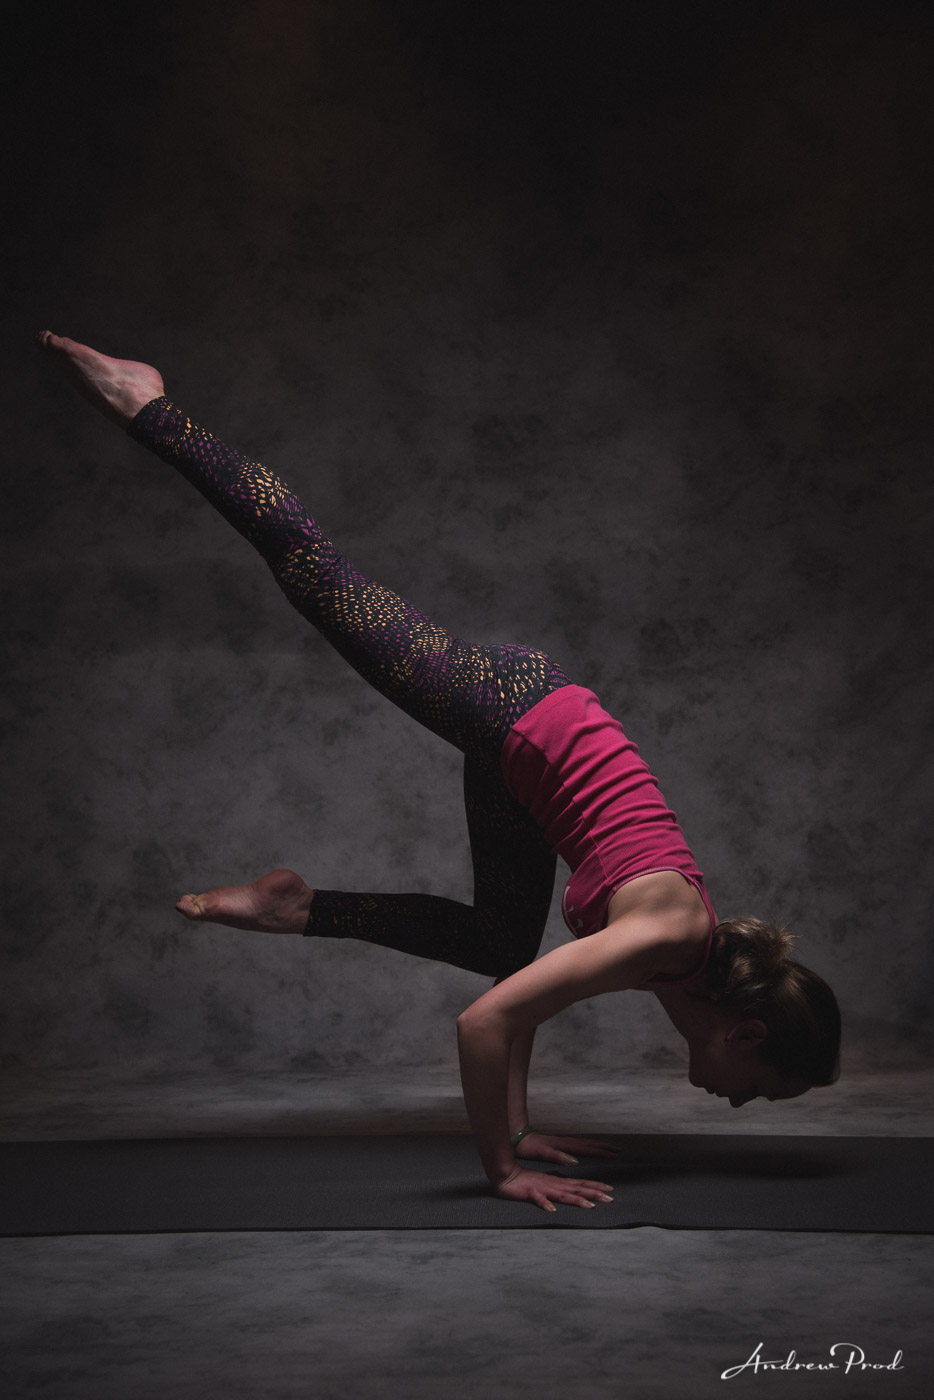 Yoga Photography Tips Photoshoot This Activity